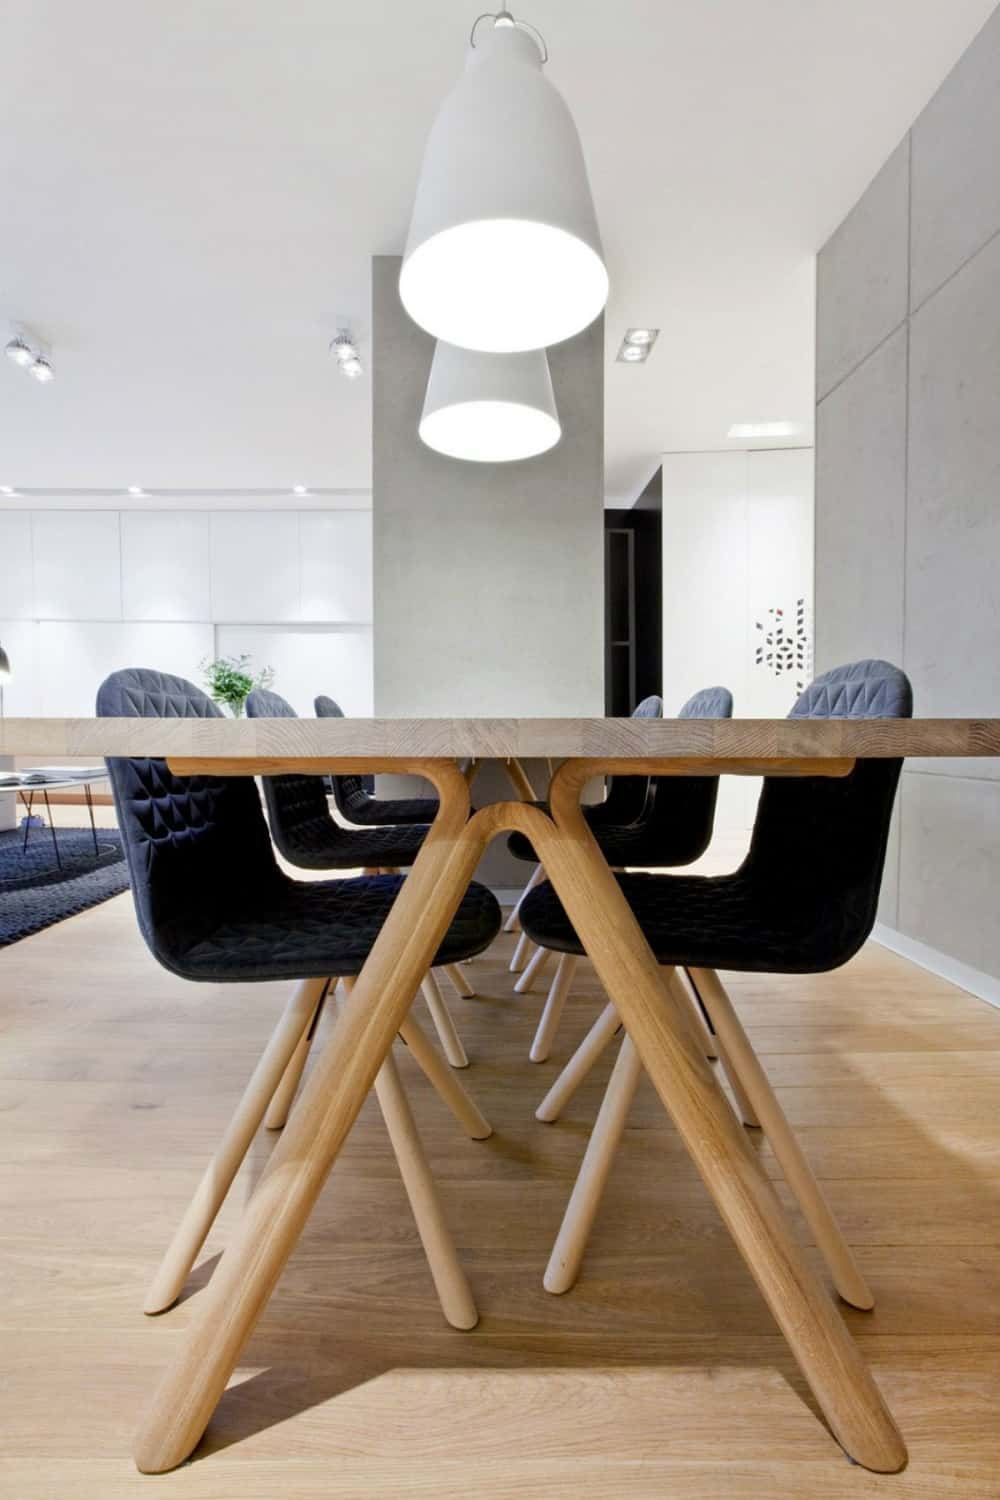 Dining area lights make a statement with their size